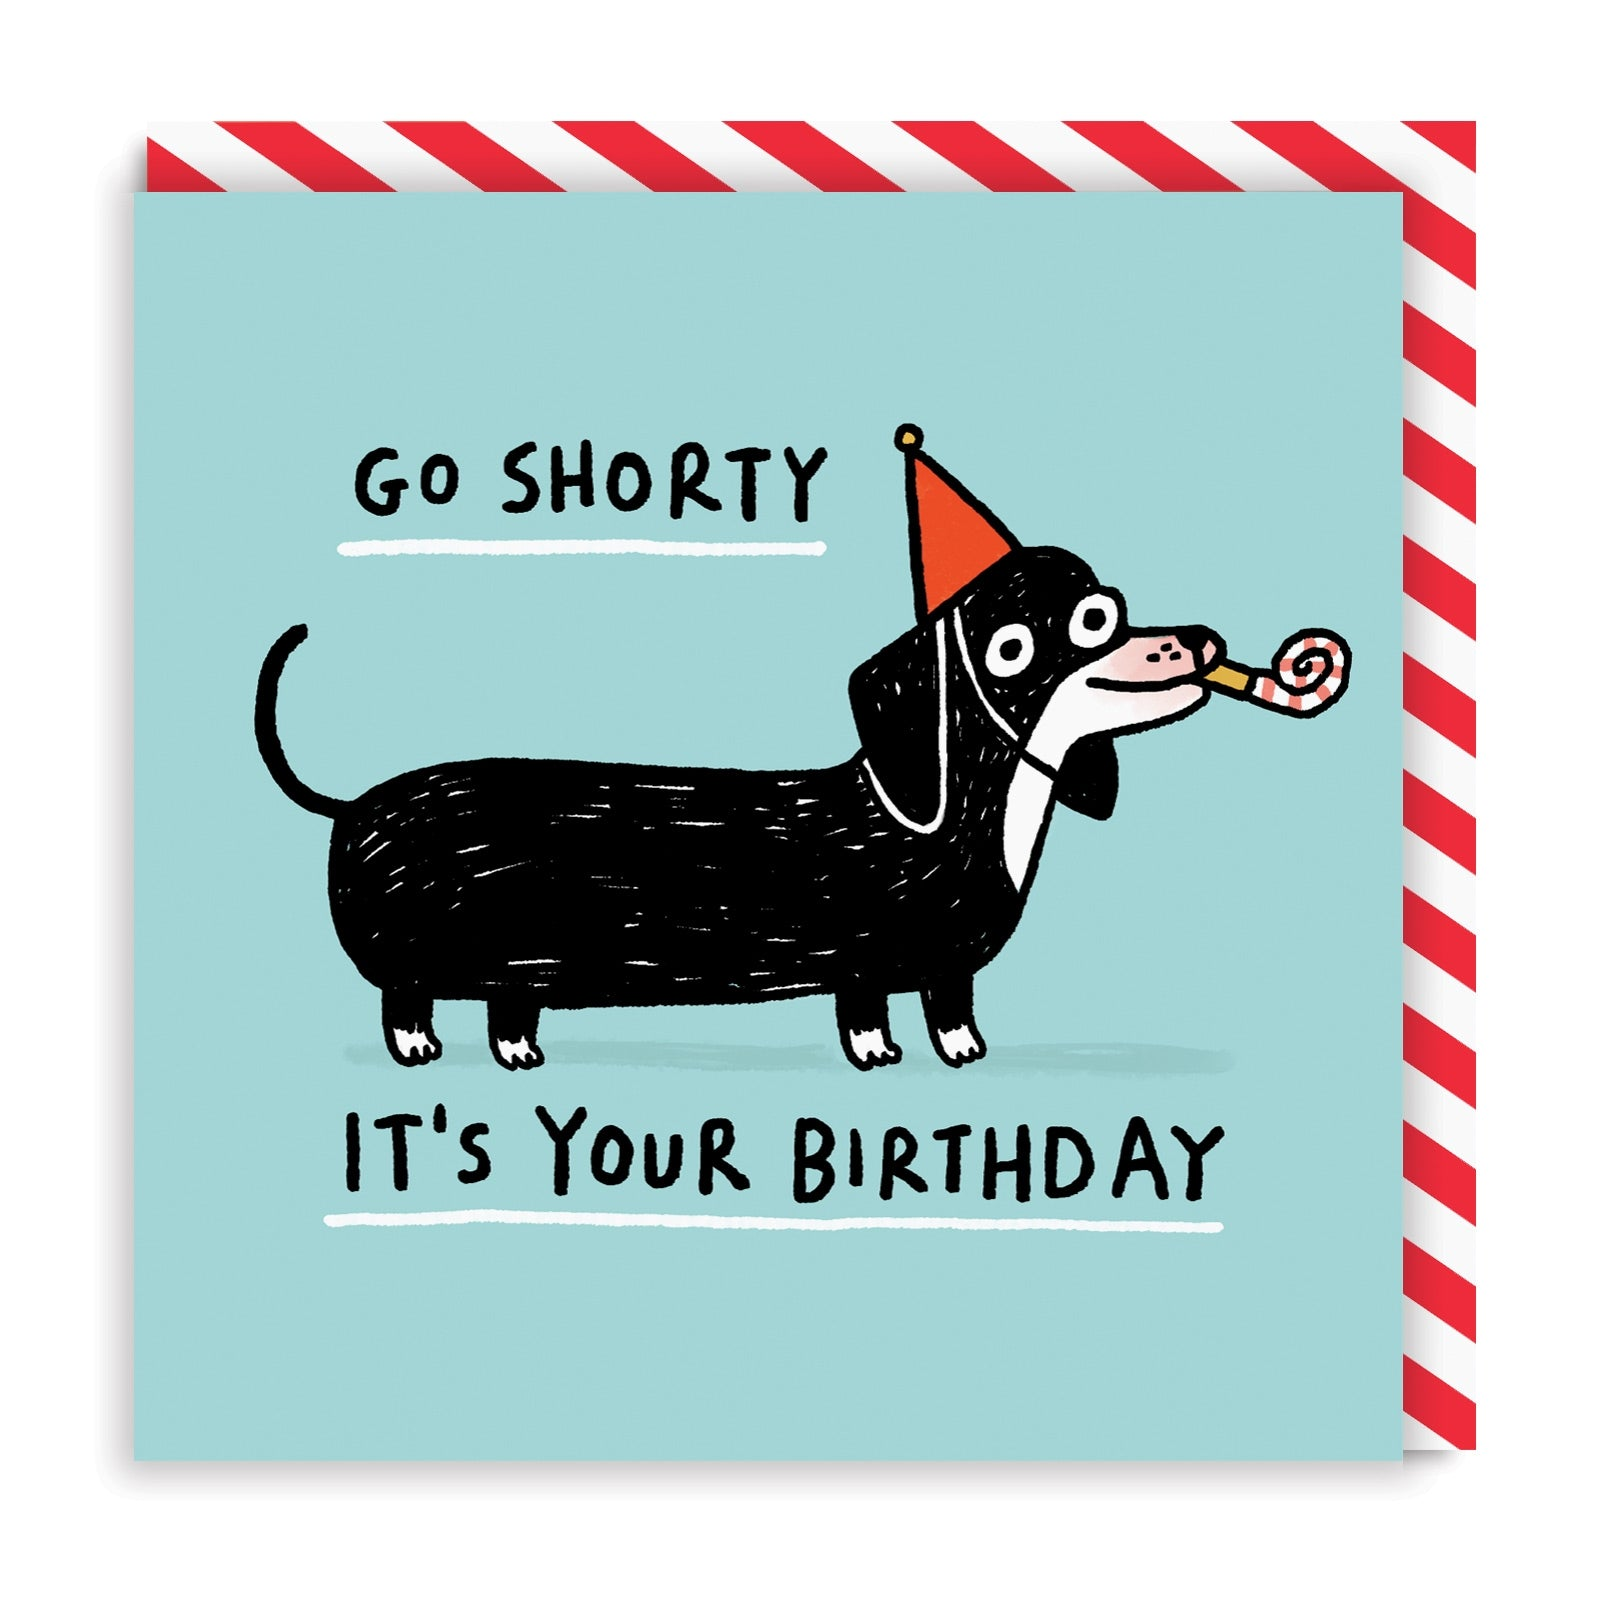 Go Shorty Square Greeting Card